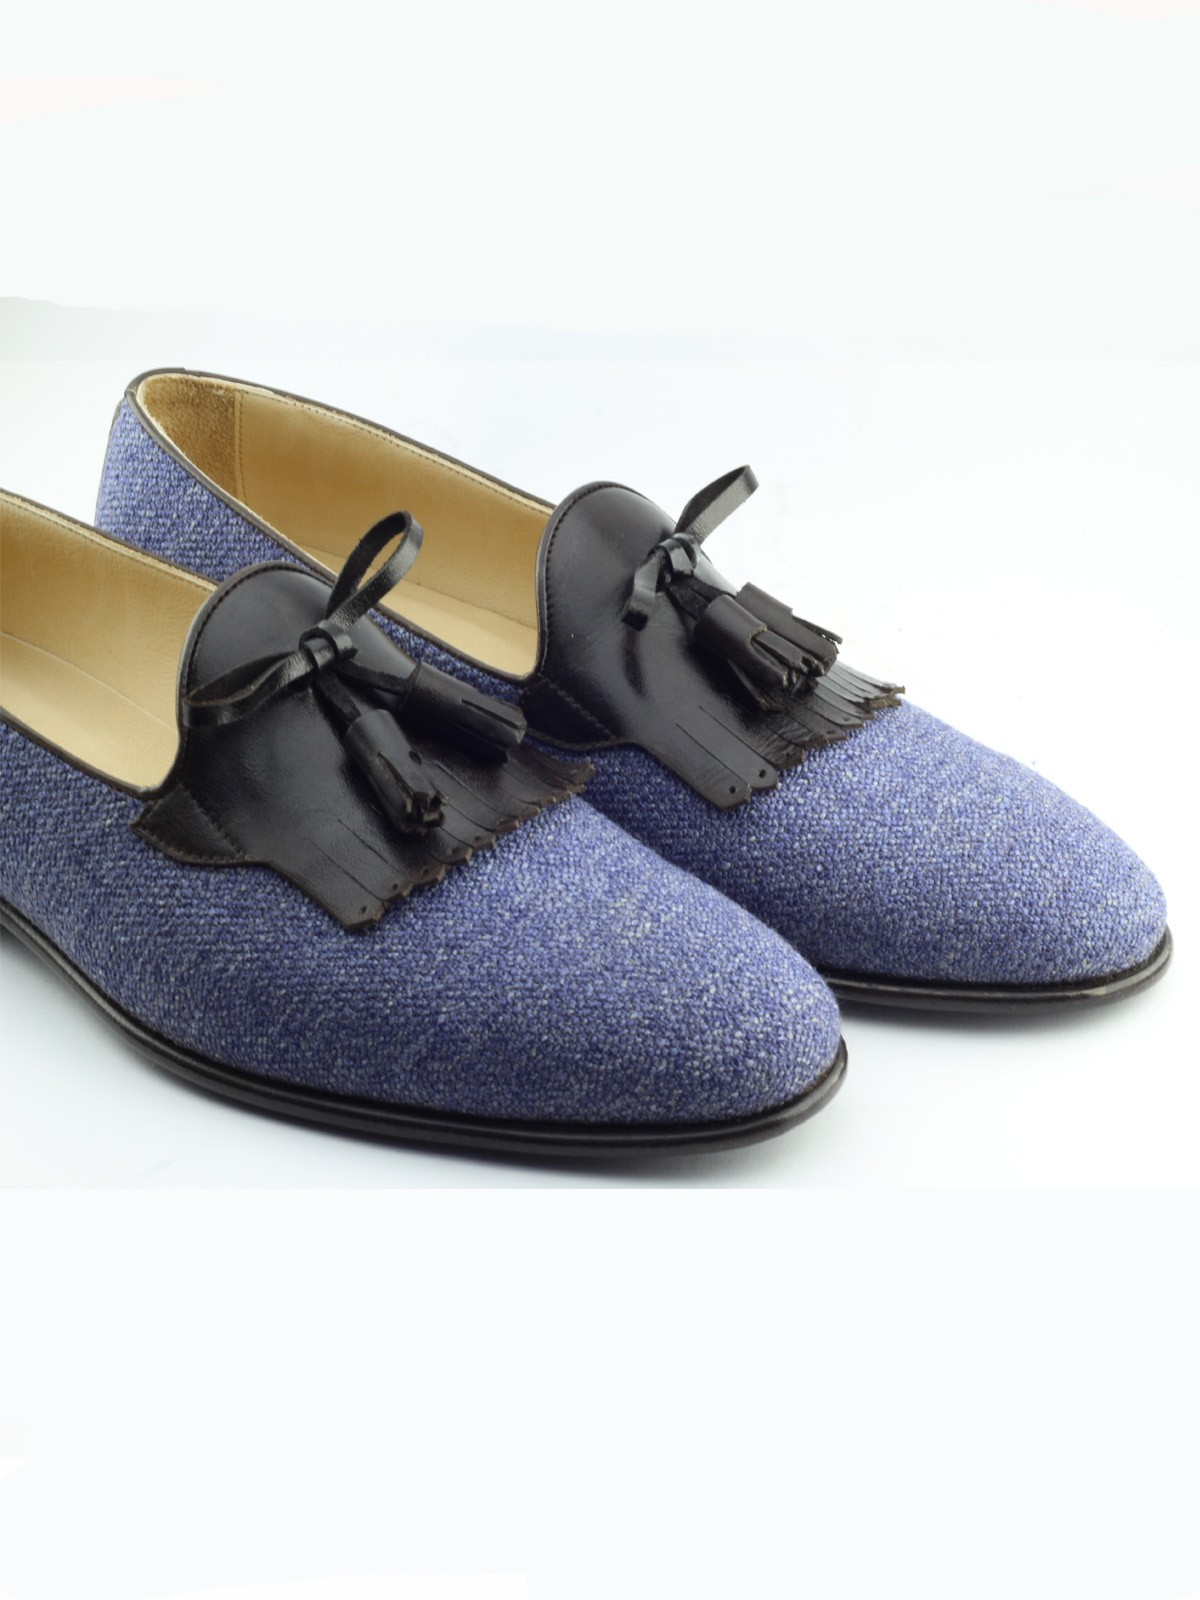 c440f214655 Buy Gray Bespoke Shoes by Gentwith.com with Free Shipping